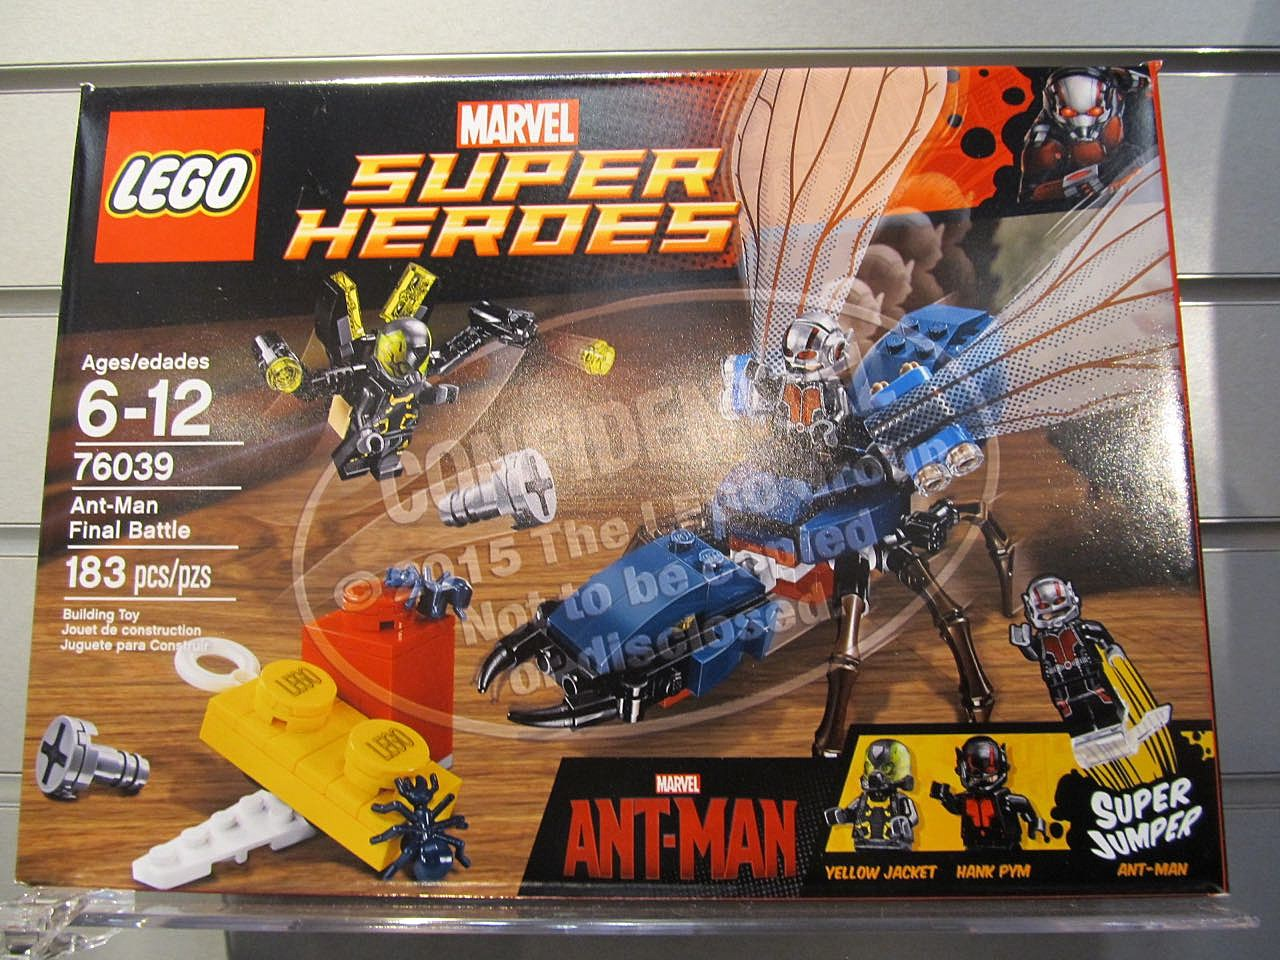 Does the 'Ant-Man' LEGO Set Reveal Some Major Spoilers?